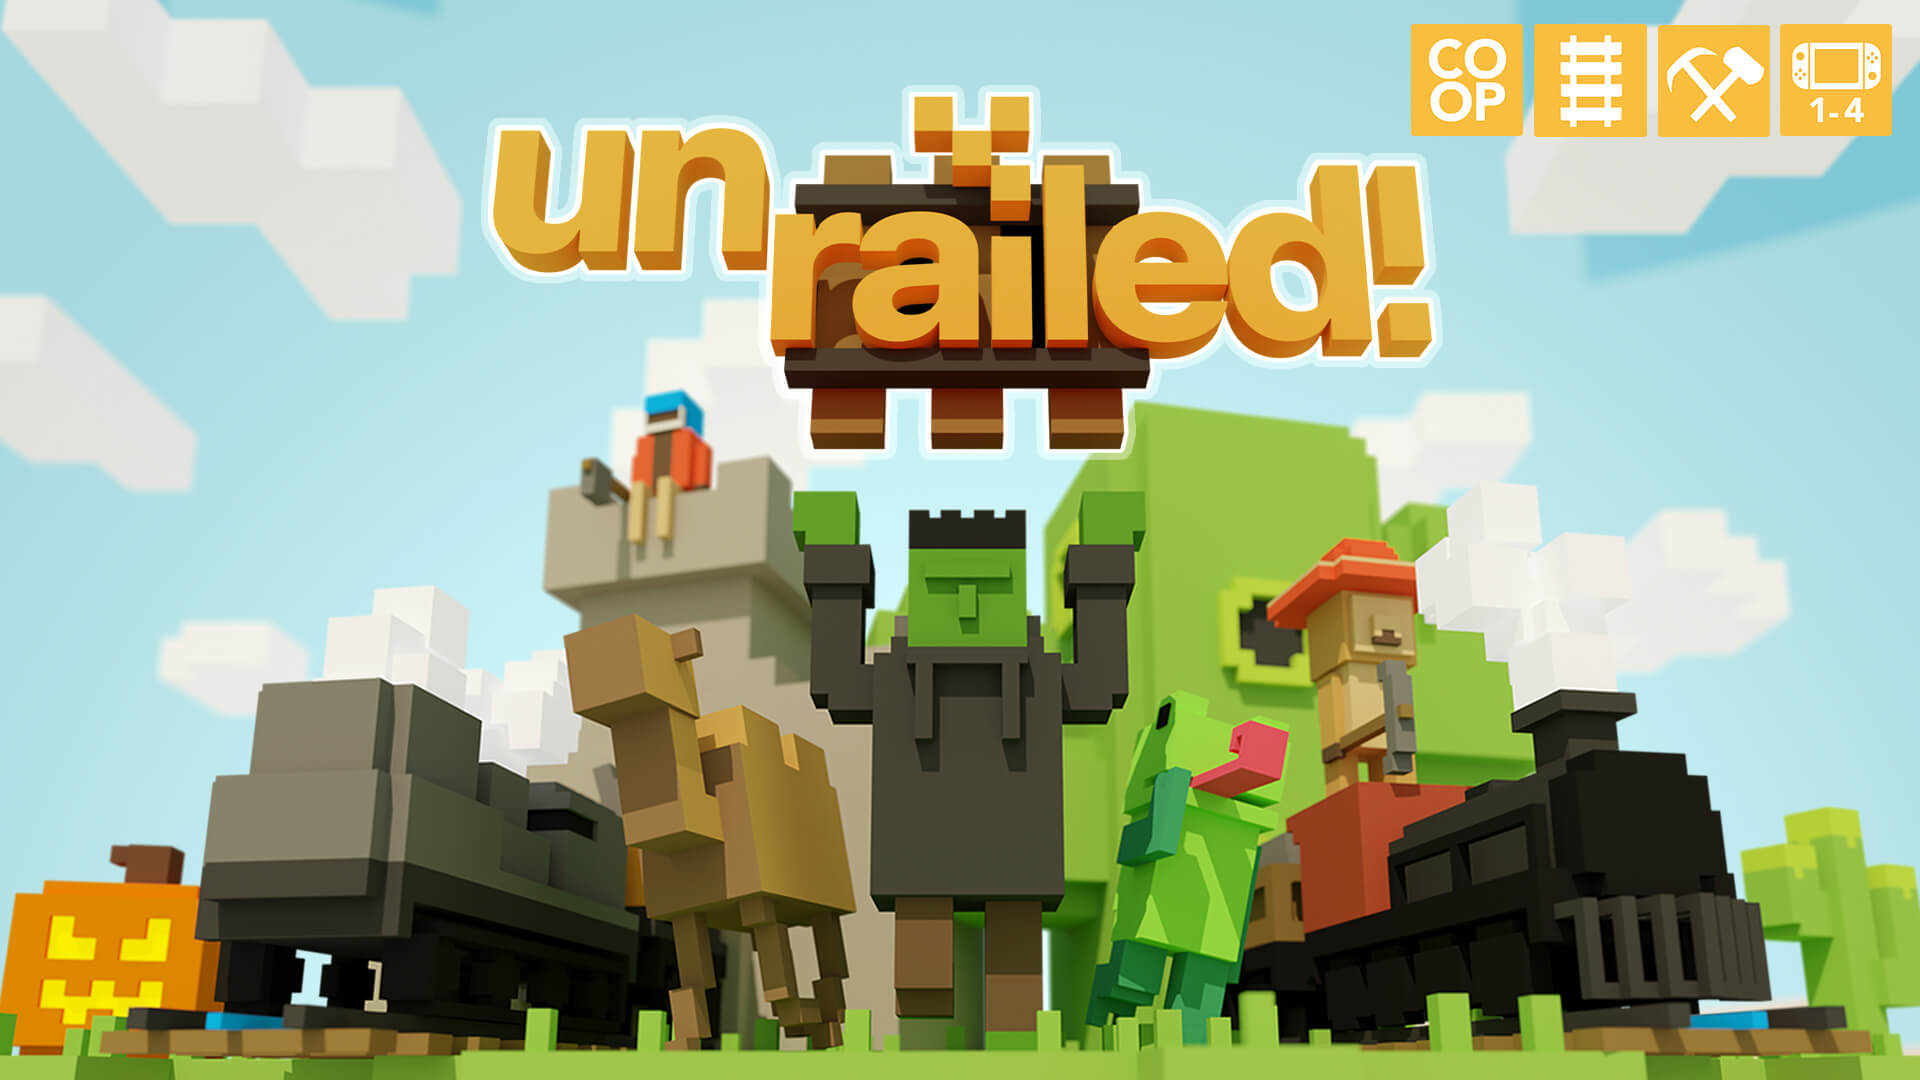 Unrailed! Free PC Download